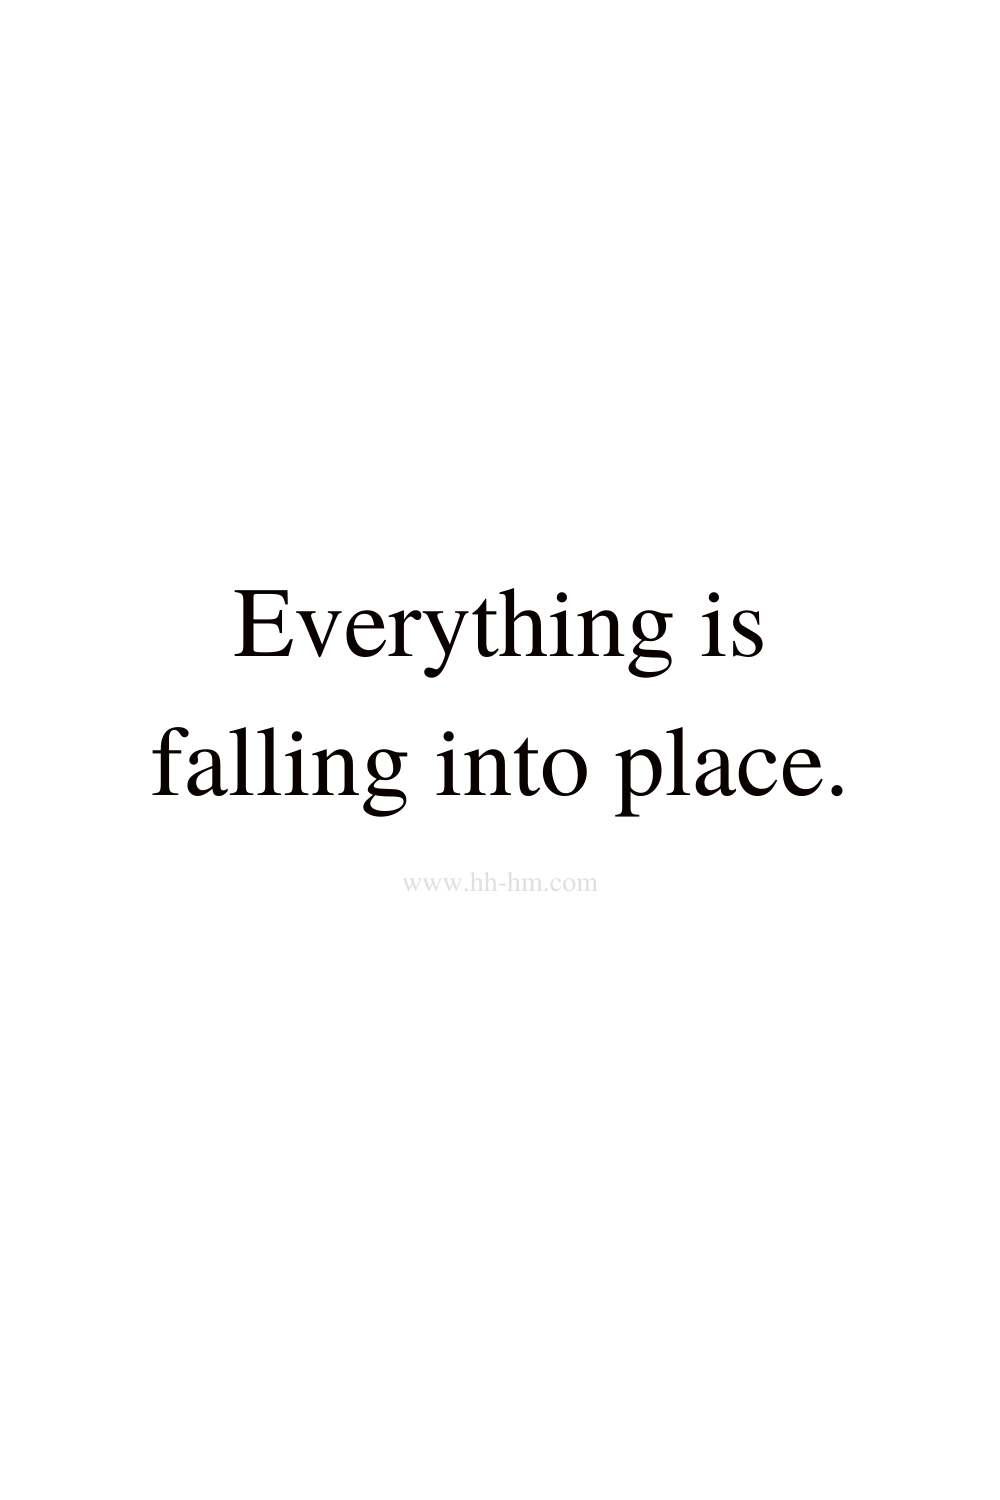 Everything is falling into place - morning affirmations for happiness